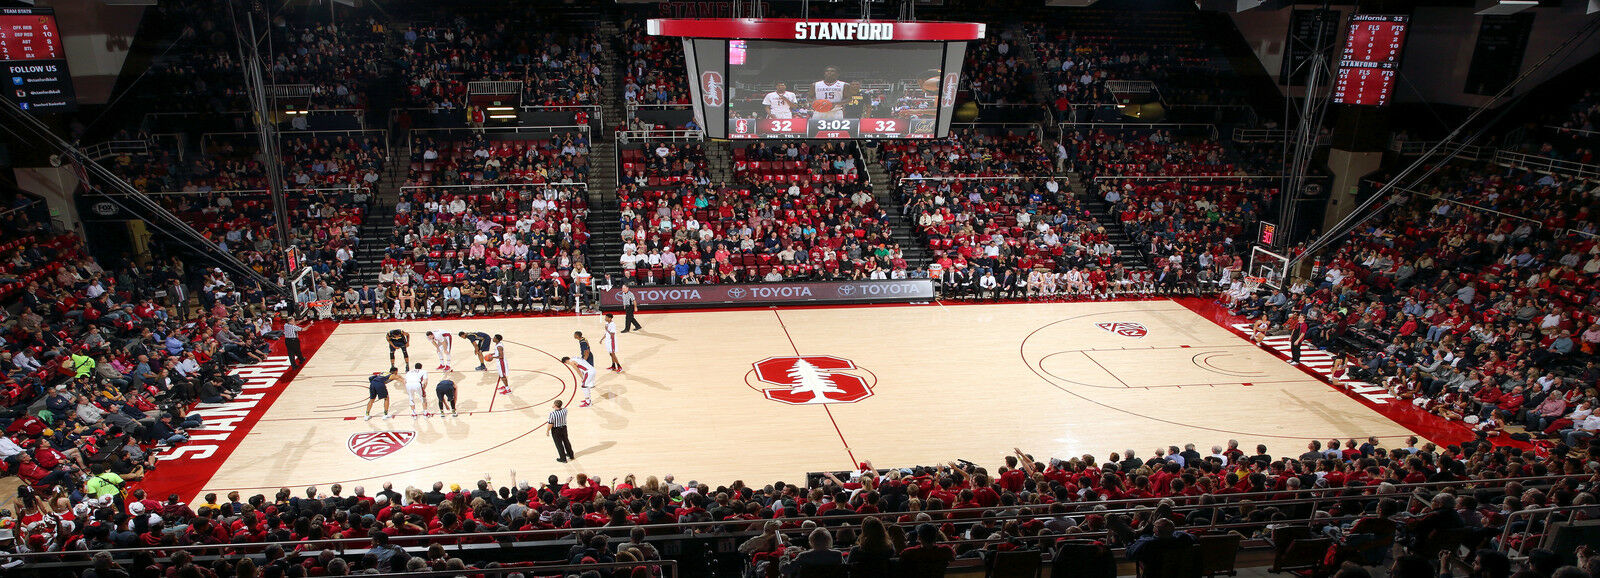 Washington Huskies at Stanford Cardinal Basketball